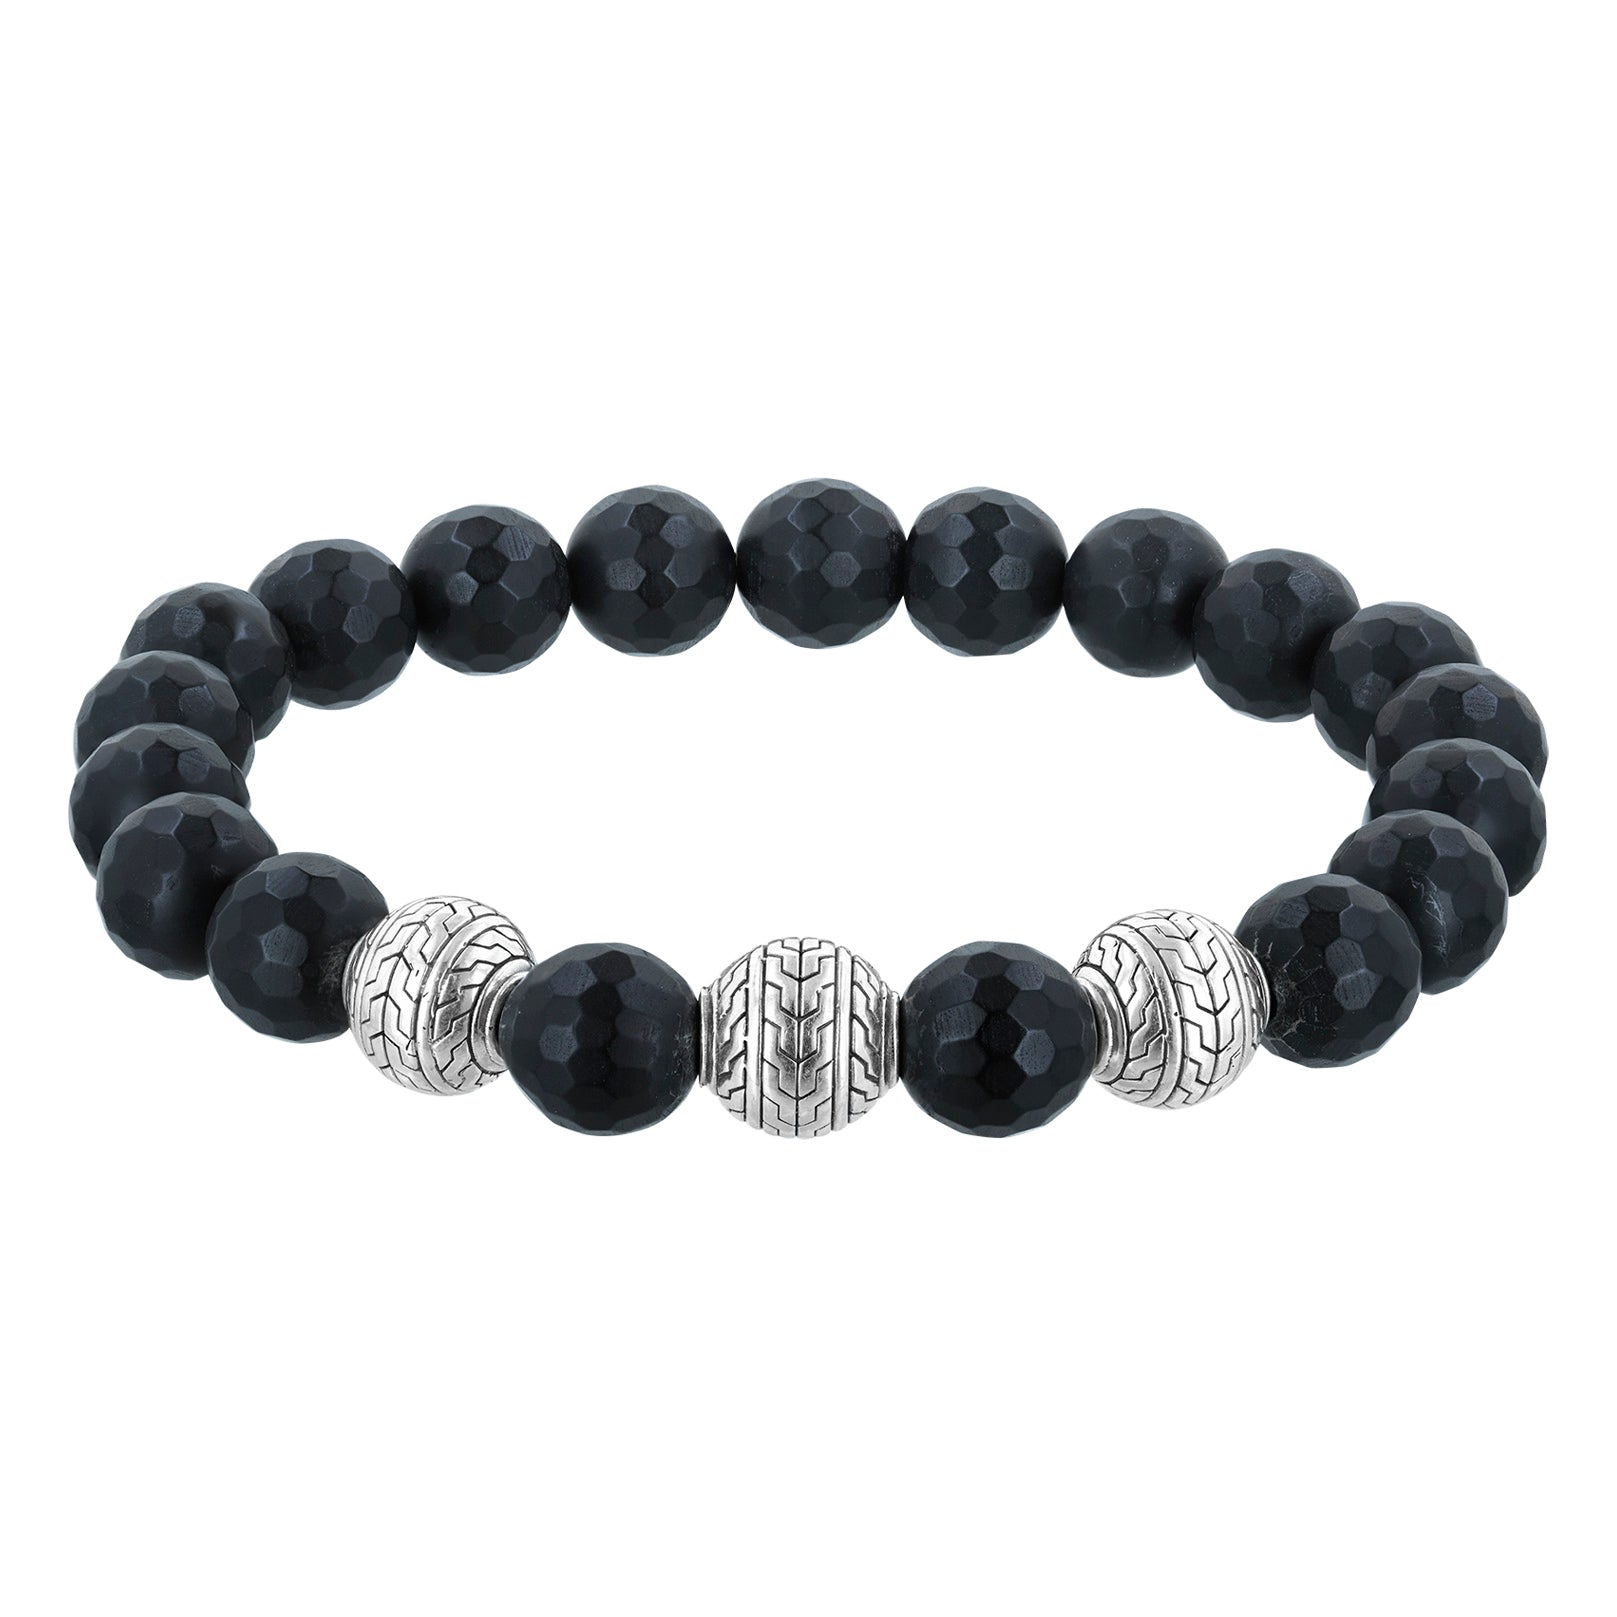 Bali Men's Faceted Frosted Black Onyx and Sterling Silver Beads Stretch Bracelet